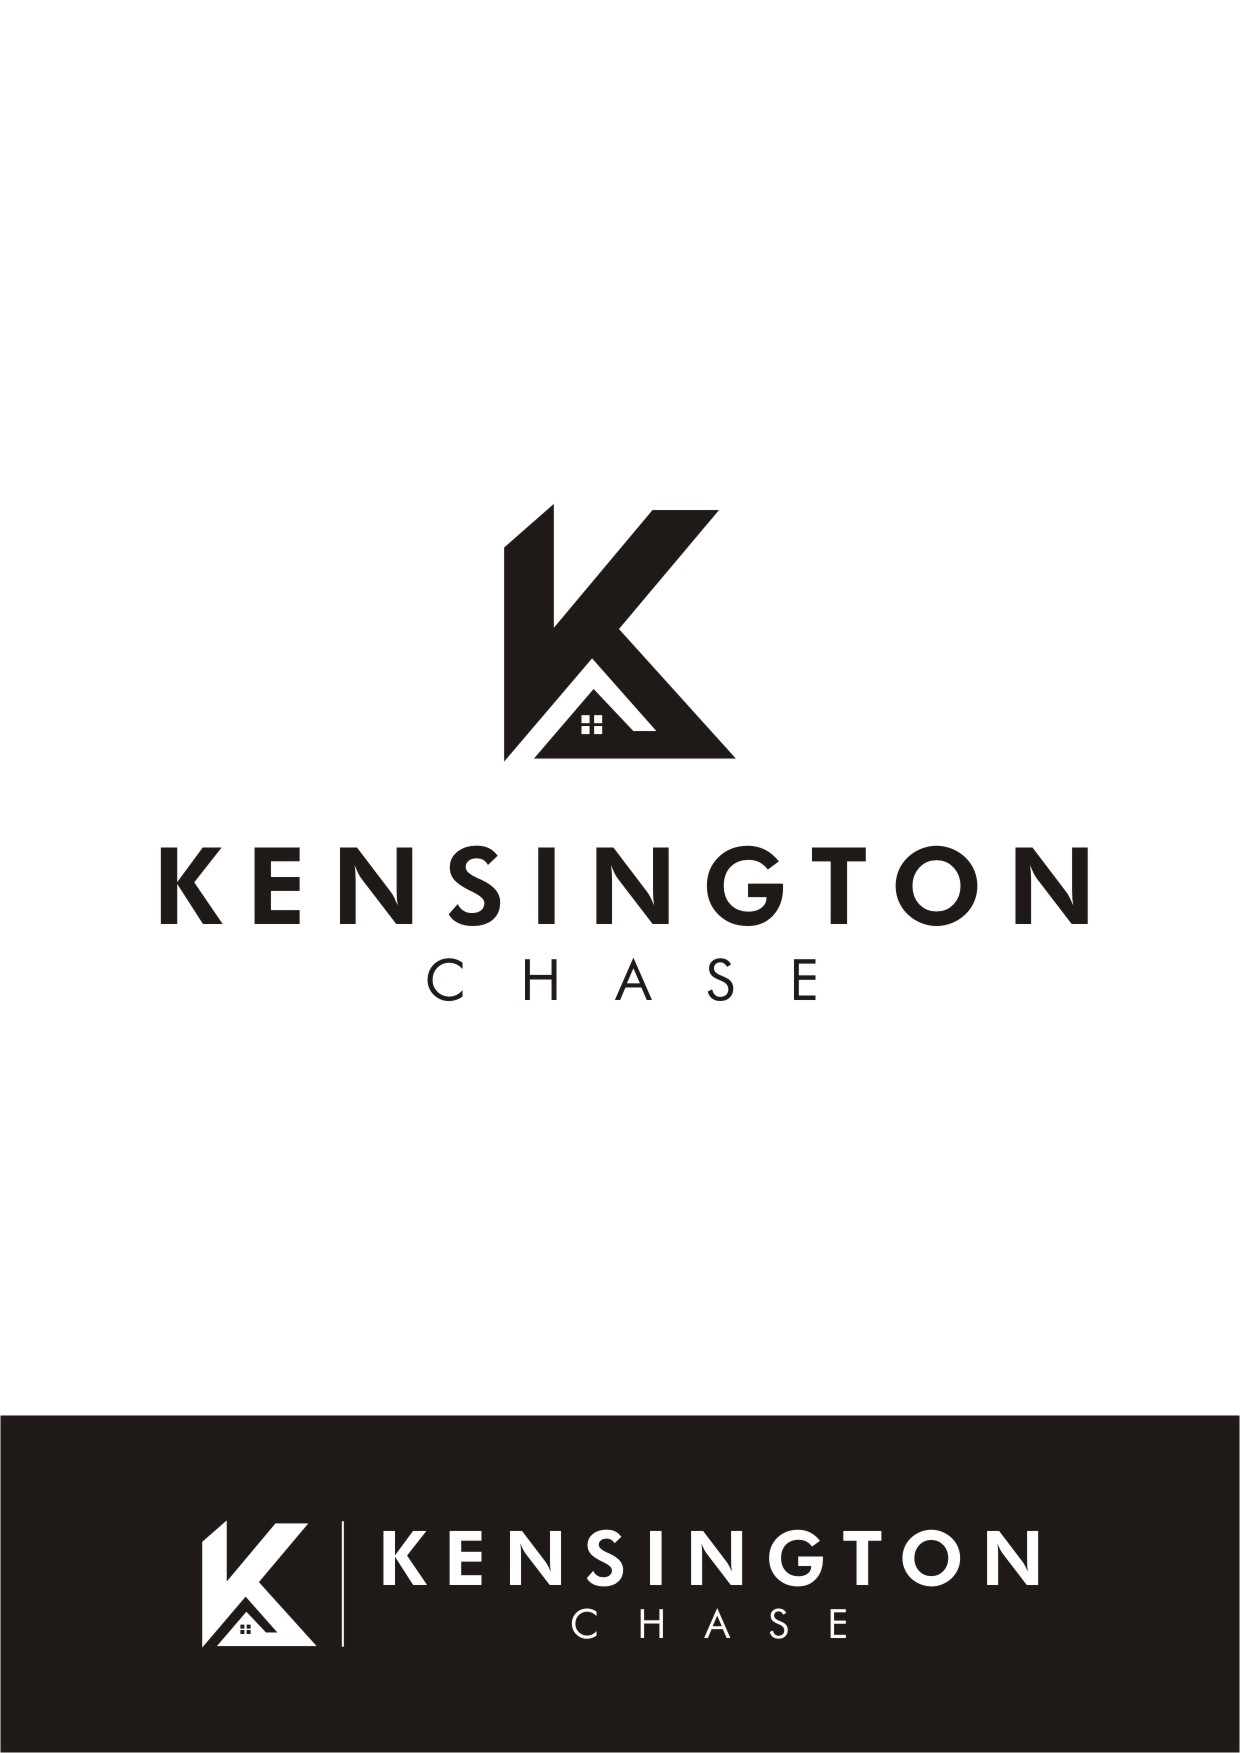 Logo Design by Spider Graphics - Entry No. 97 in the Logo Design Contest Kensington Chase  Logo Design.